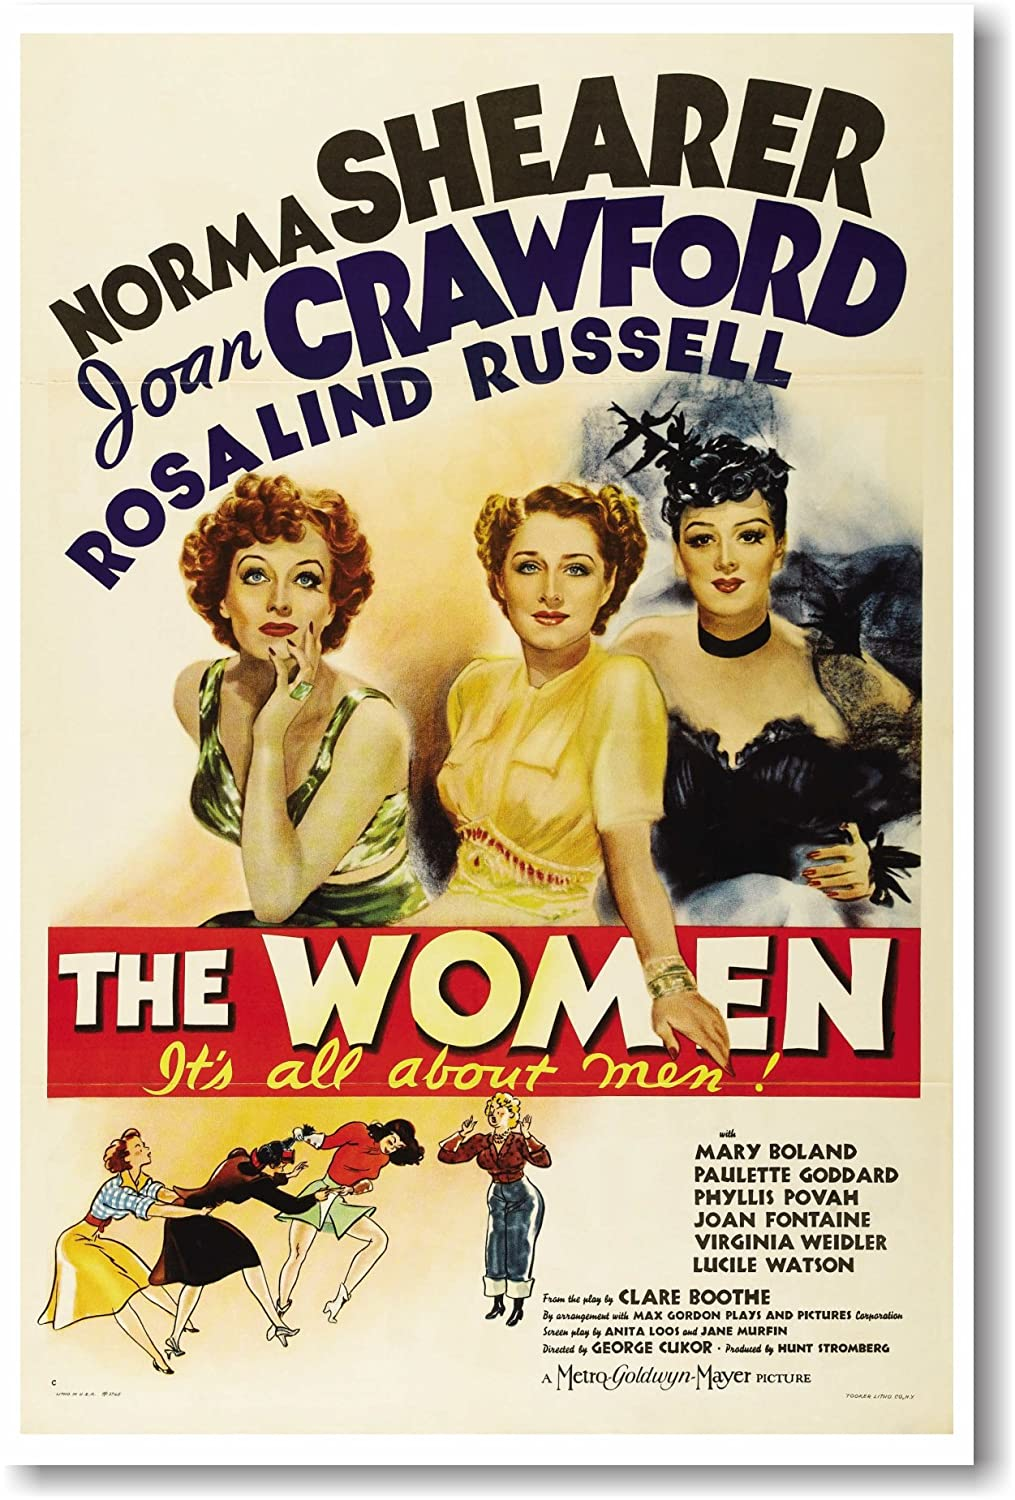 The Women 1939 Movie Poster - NEW Vintage Movie Poster